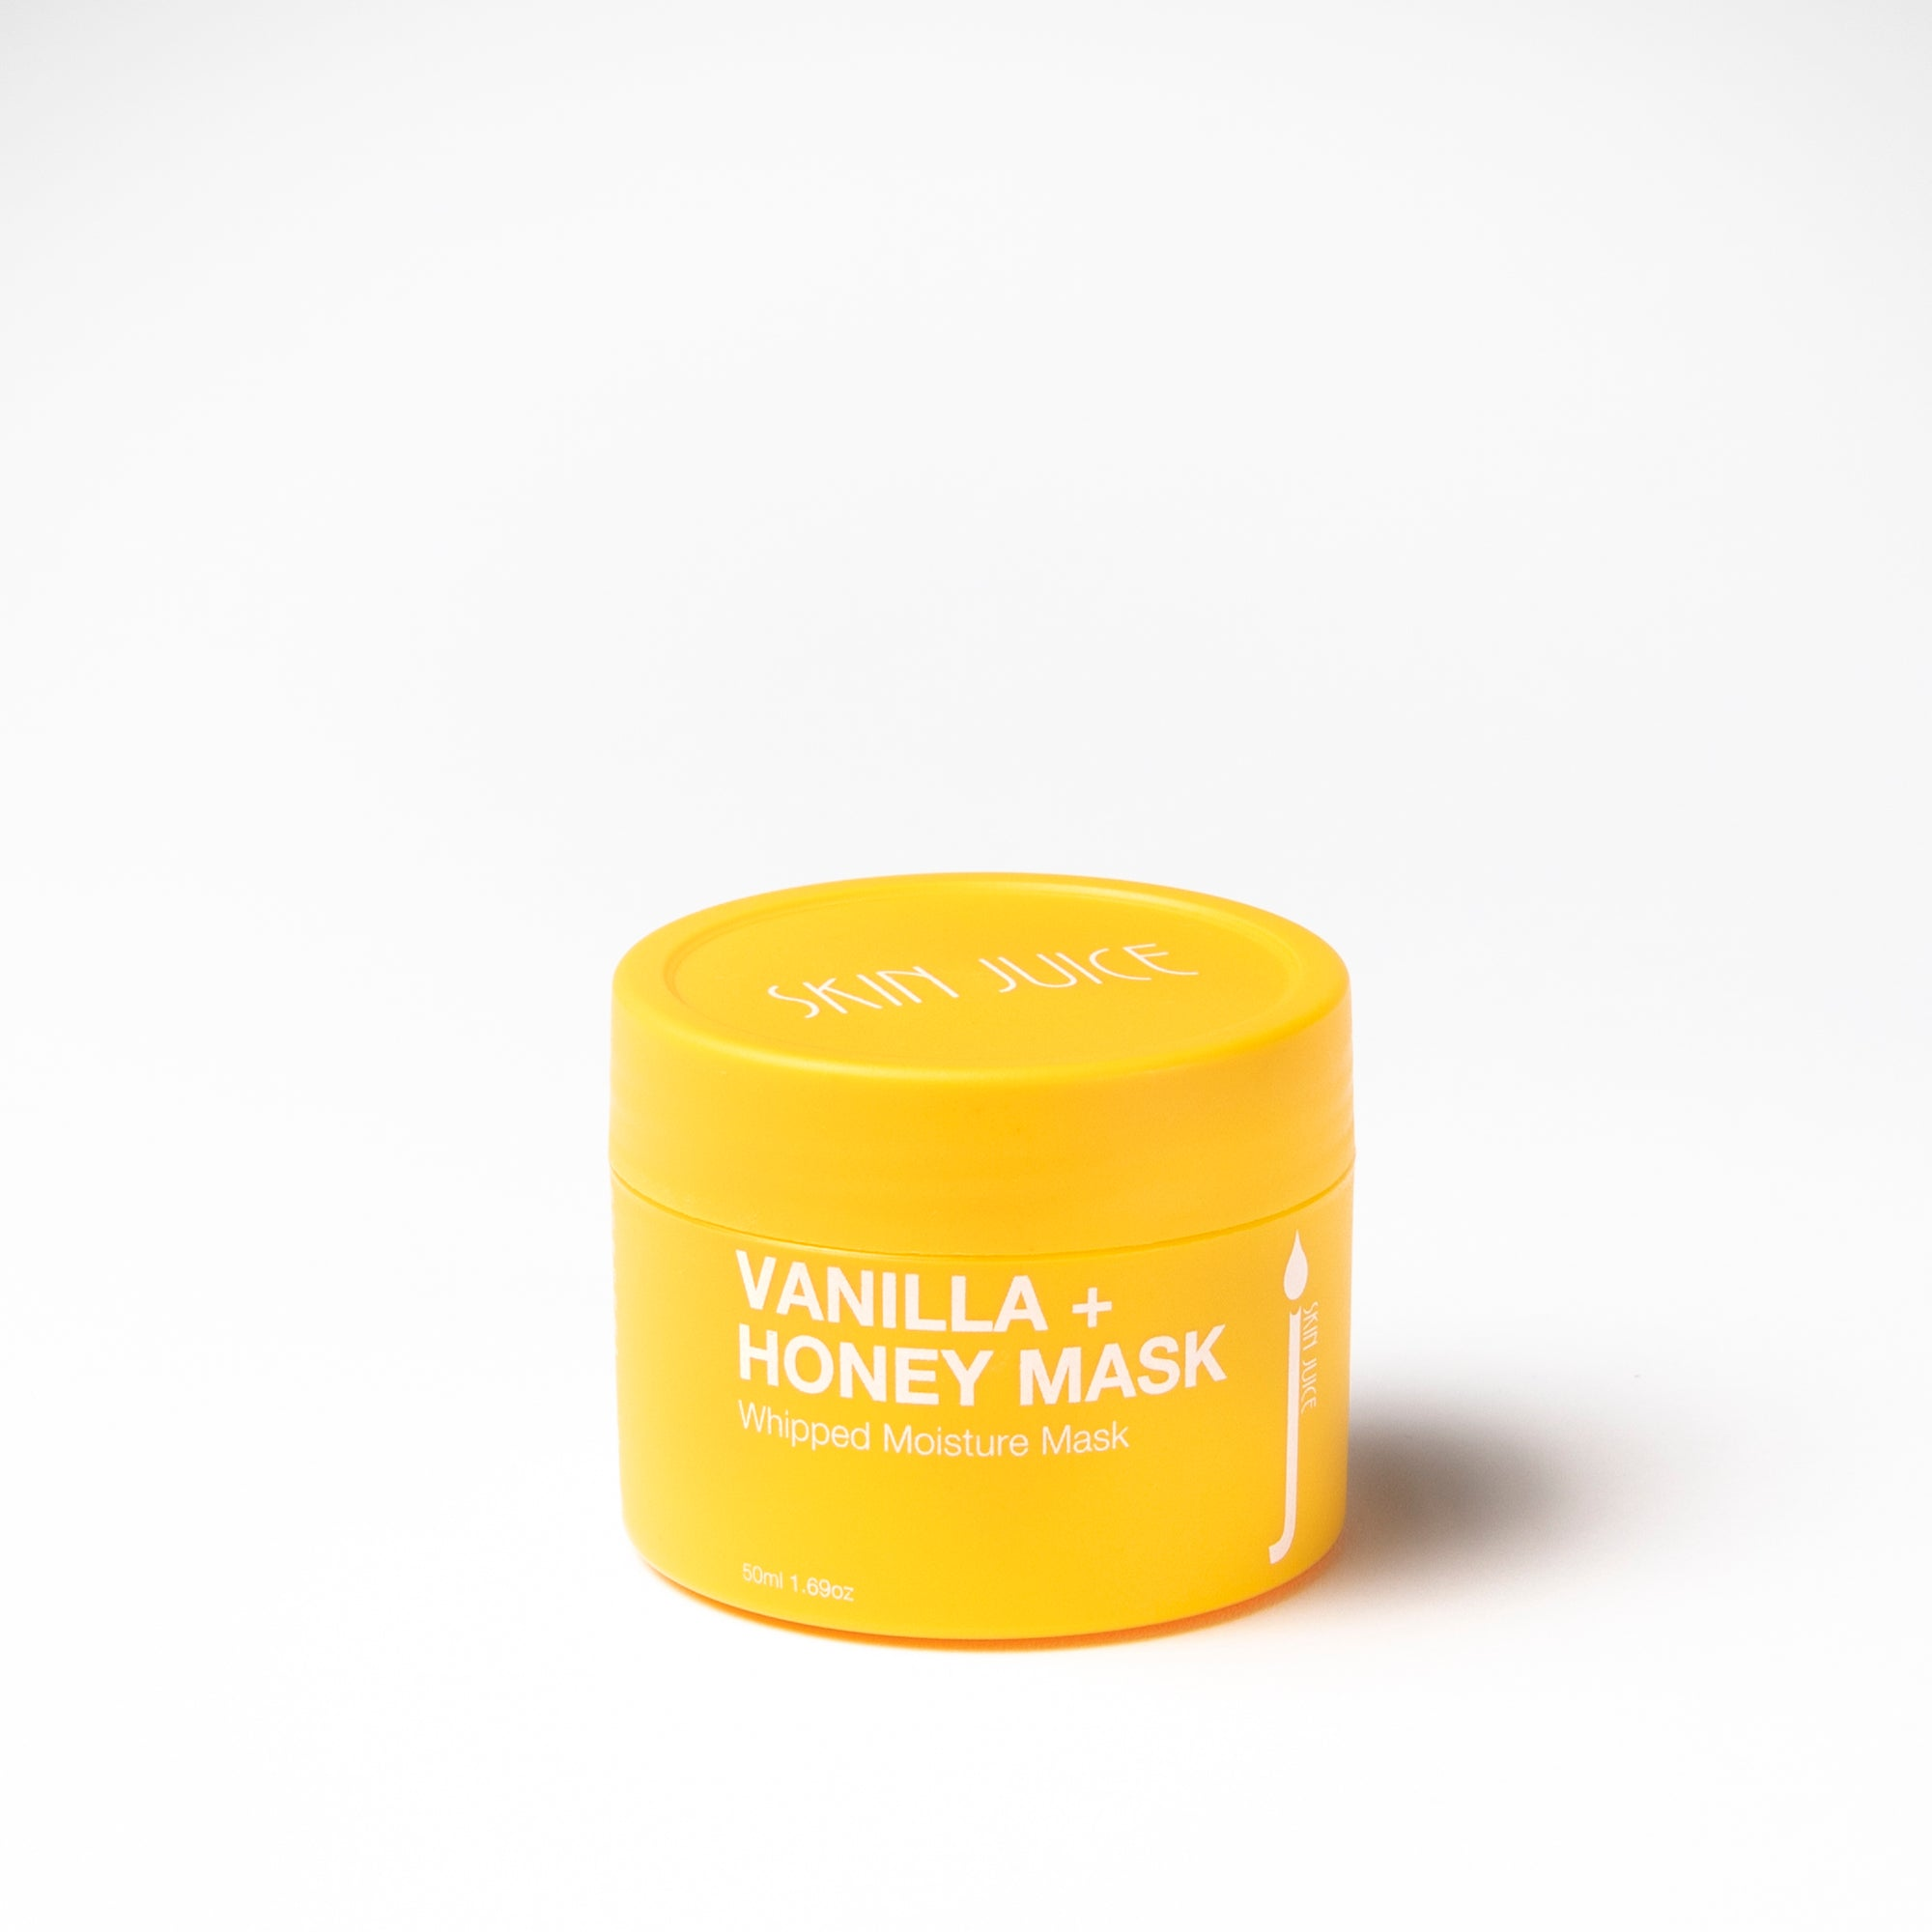 Skin Juice Vanilla and Honey Mask 50ml. Cruelty free and ethical skincare. Available at Skinbase Beauty